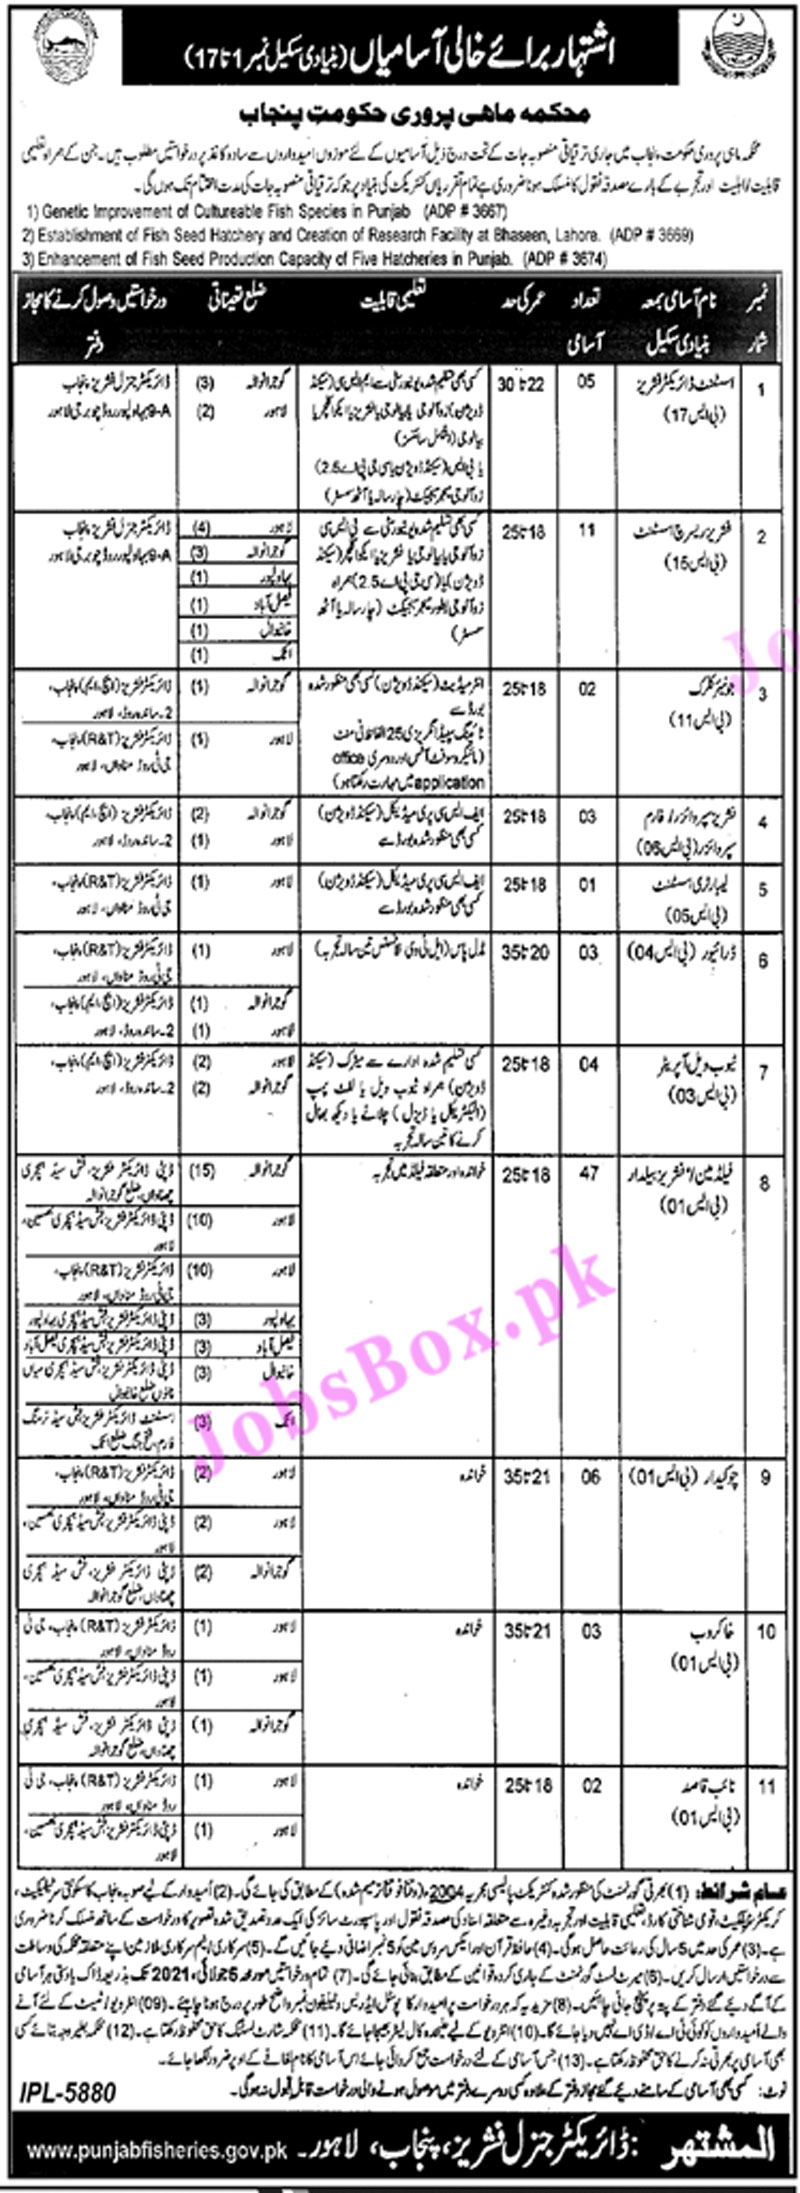 Government Jobs in Fisheries Department Punjab 2021 Latest Vacancies - Fisheries Department Punjab Jobs Advertisement